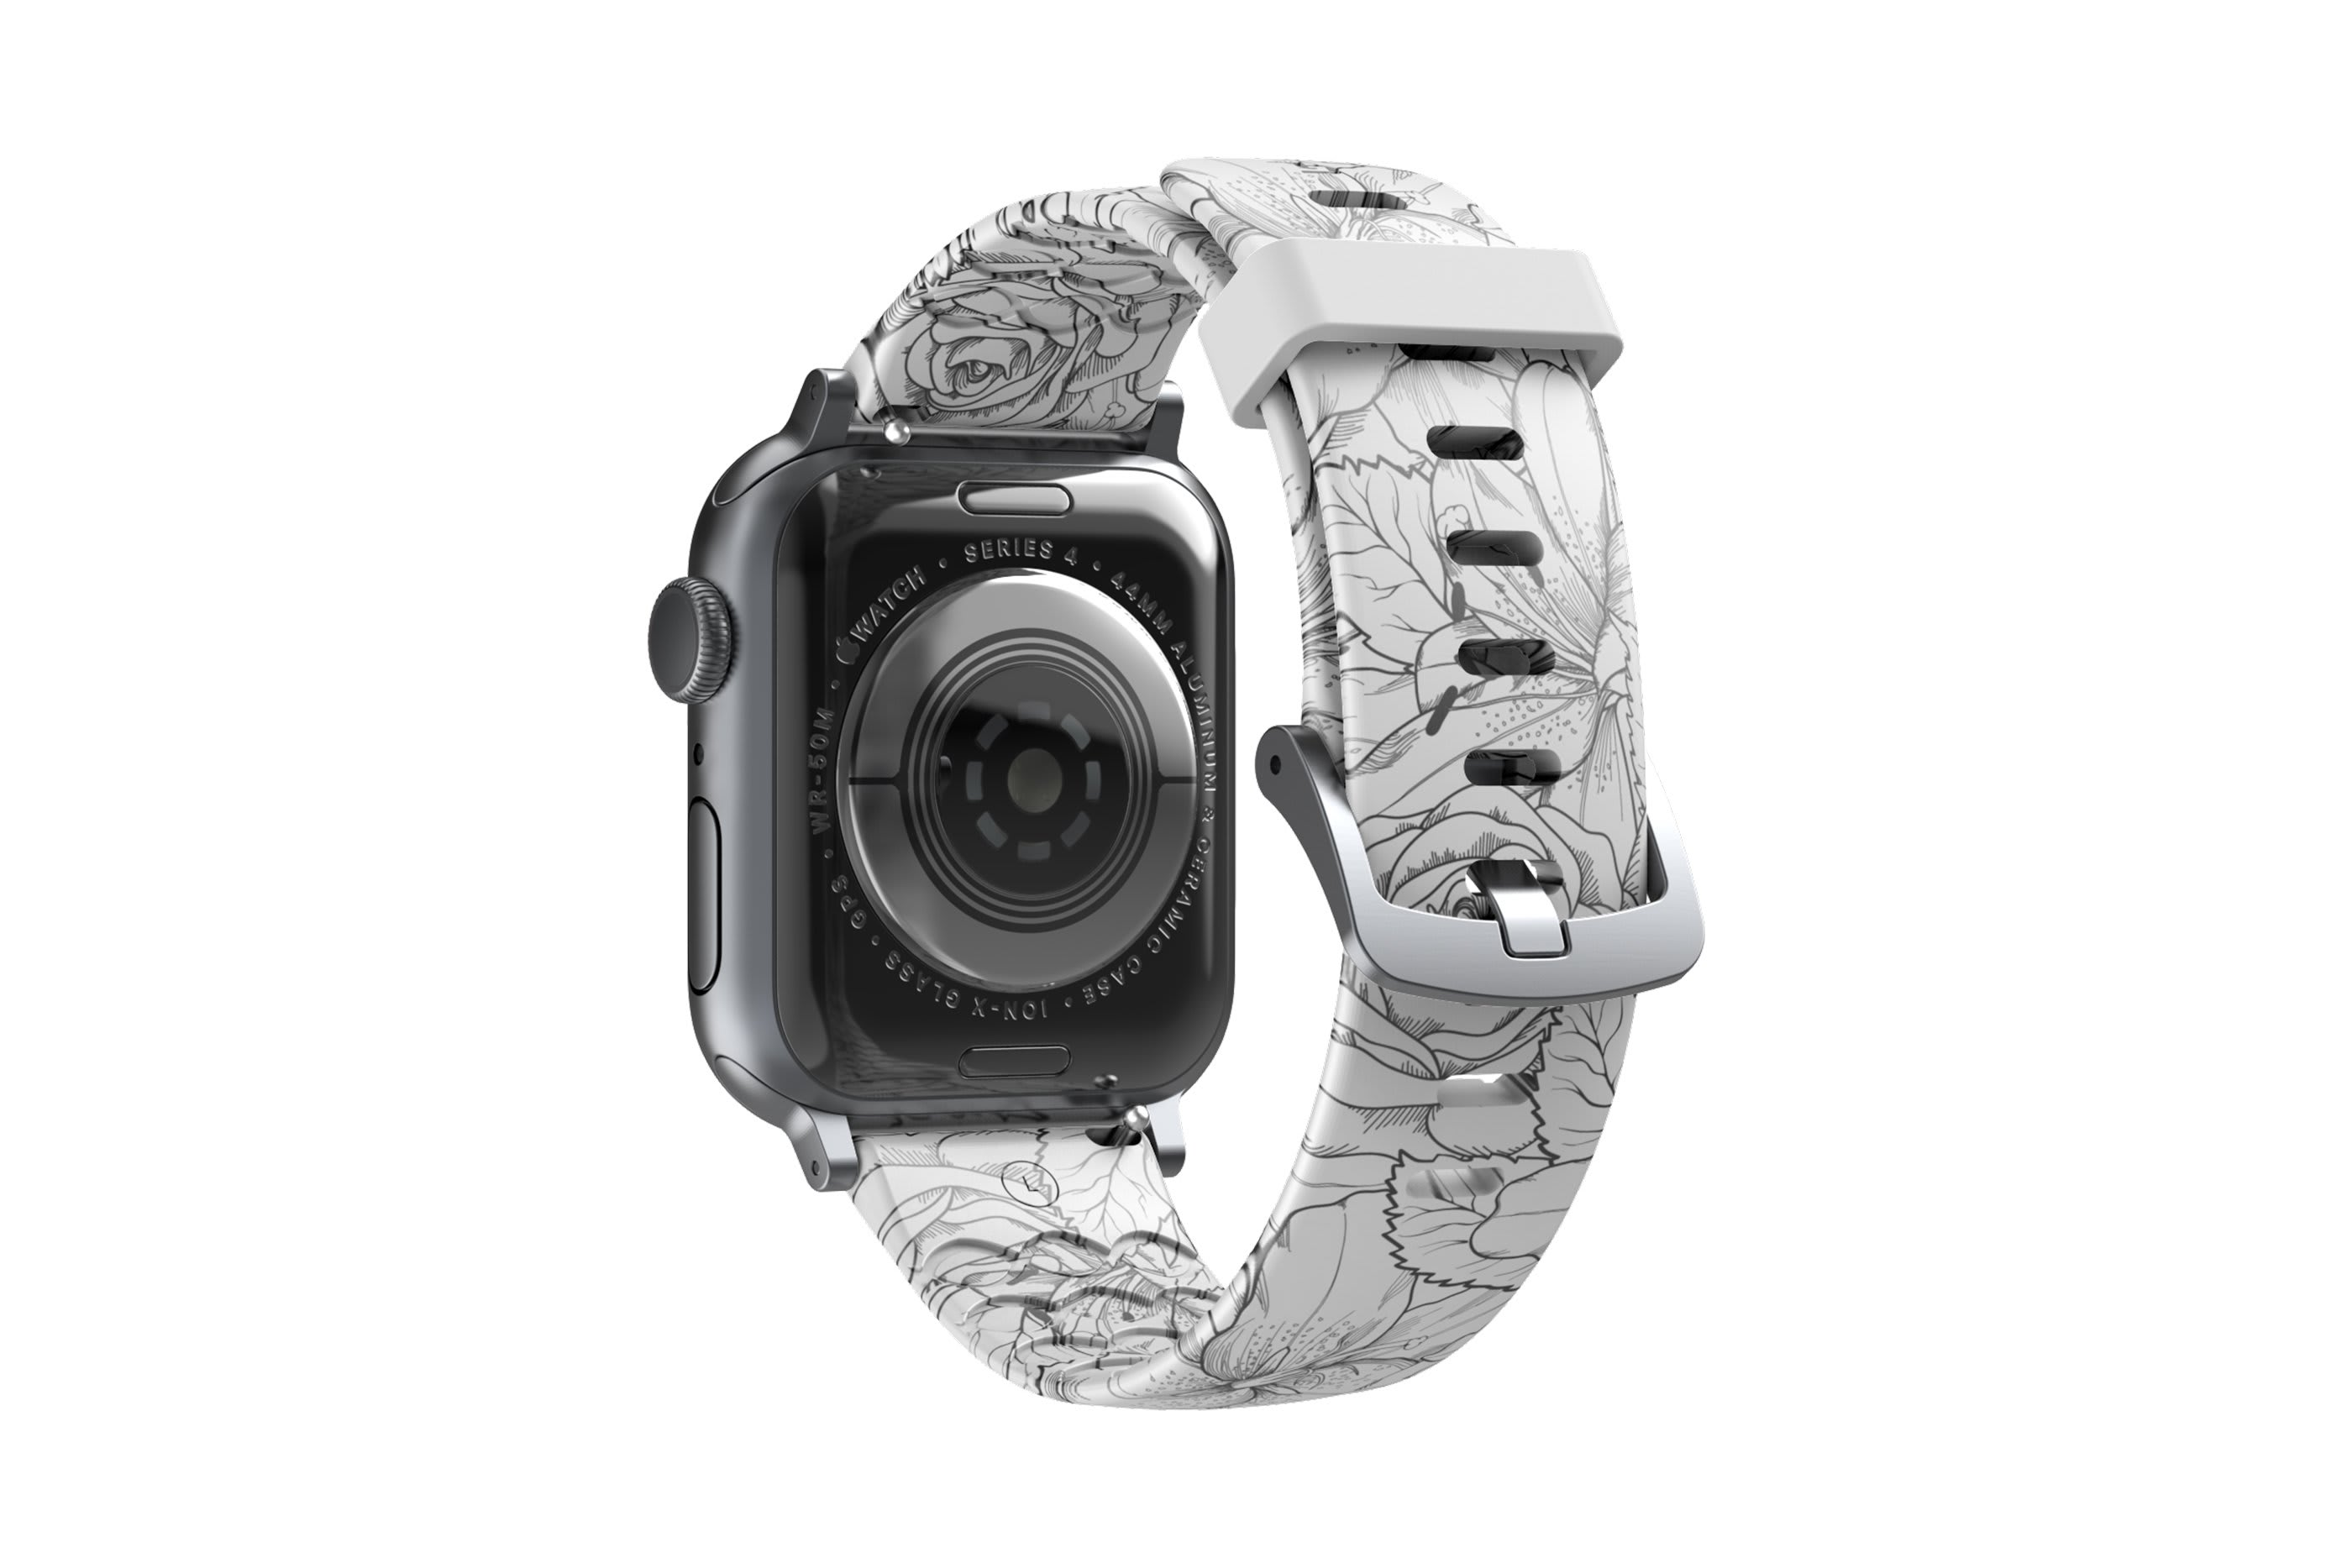 Winter Rose Apple Watch Band with silver hardware viewed from rear